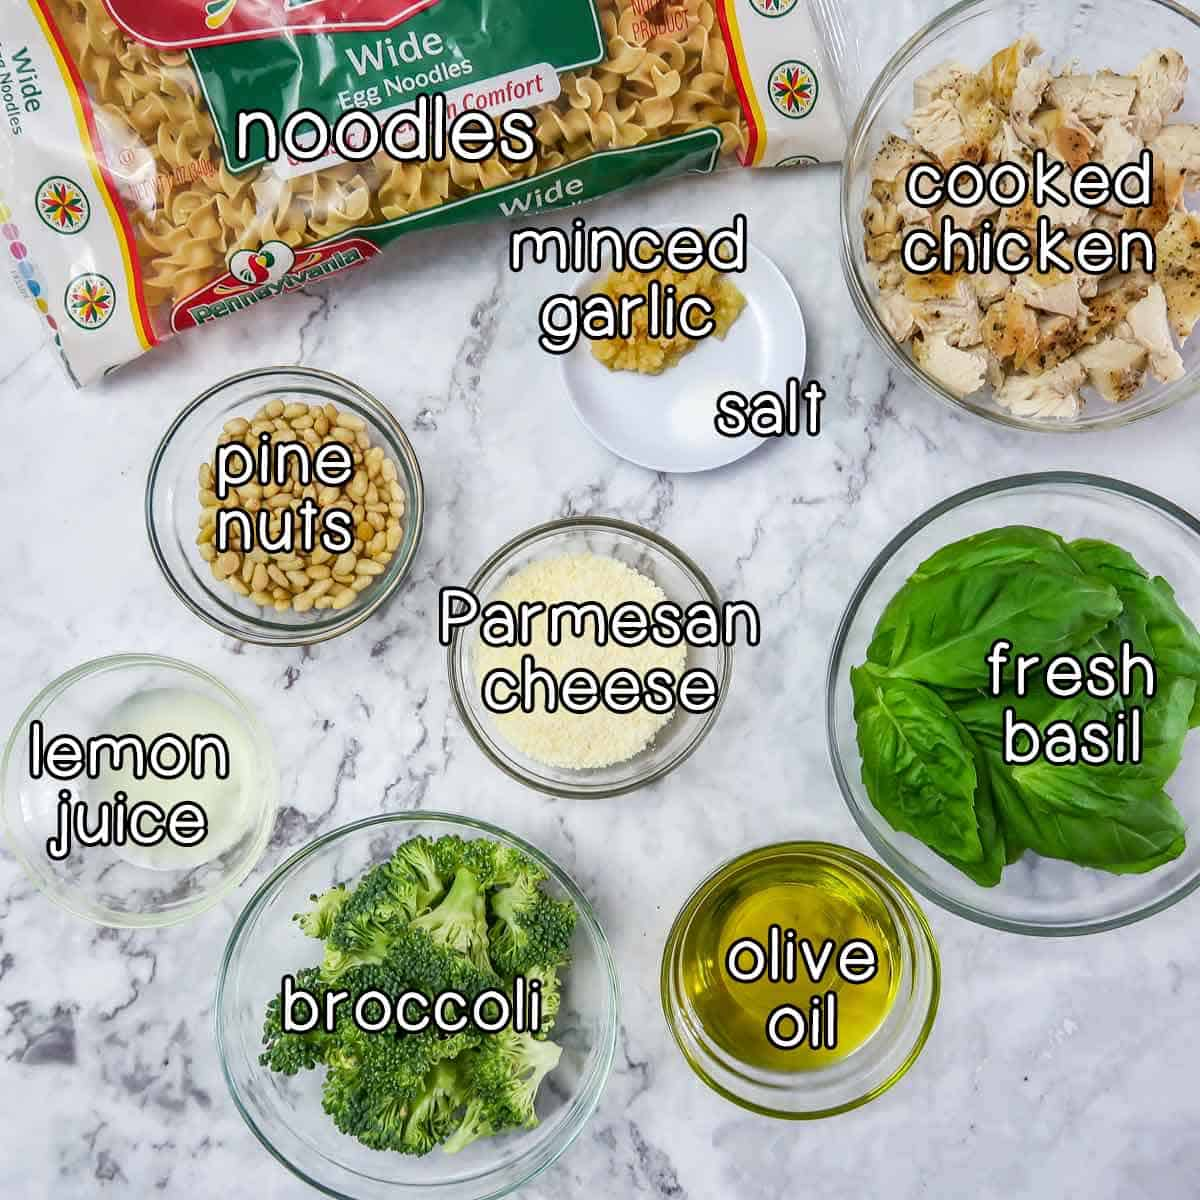 Overhead shot of ingredients- noodles, minced garlic, salt, cooked chicken, pine nuts, parmesan cheese, lemon juice, broccoli, olive oil, and fresh basil.